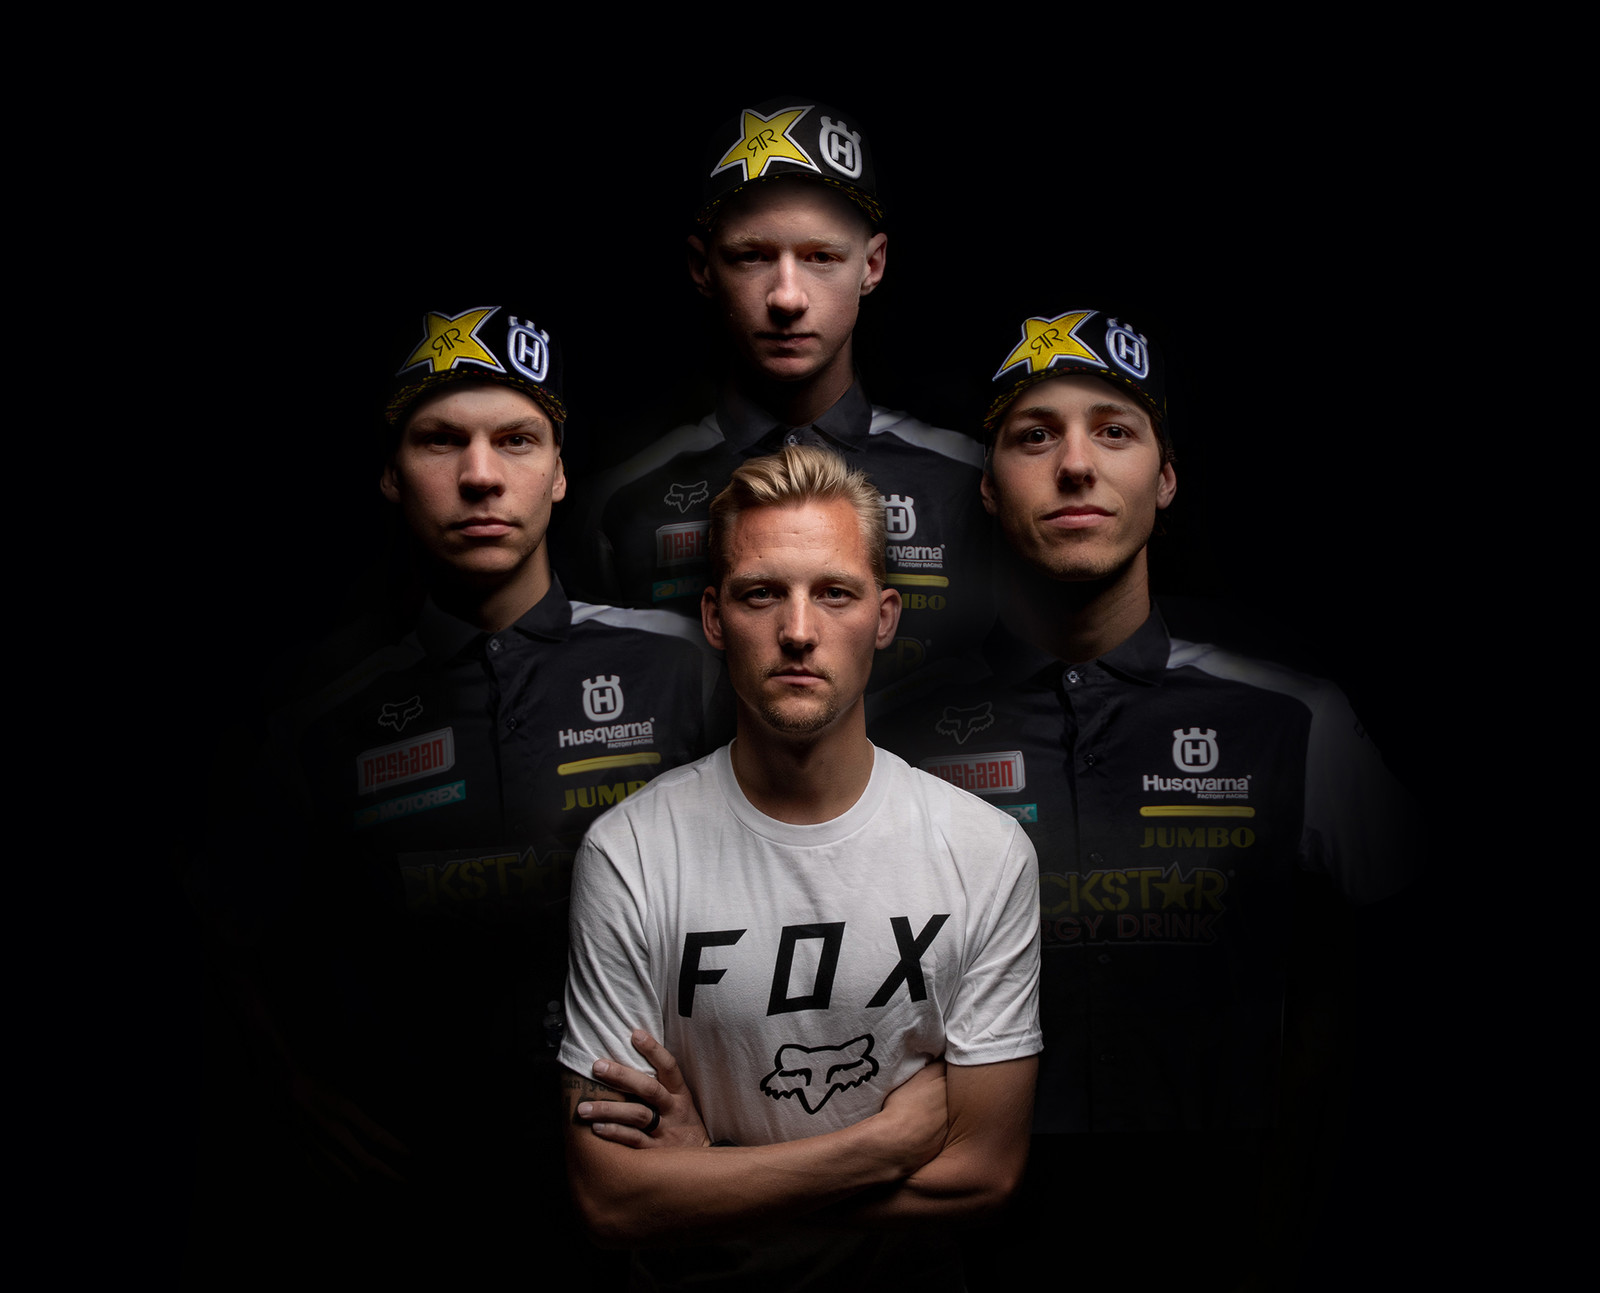 Fox Racing Welcomes Rockstar Energy Husqvarna MX2 Team to the Family